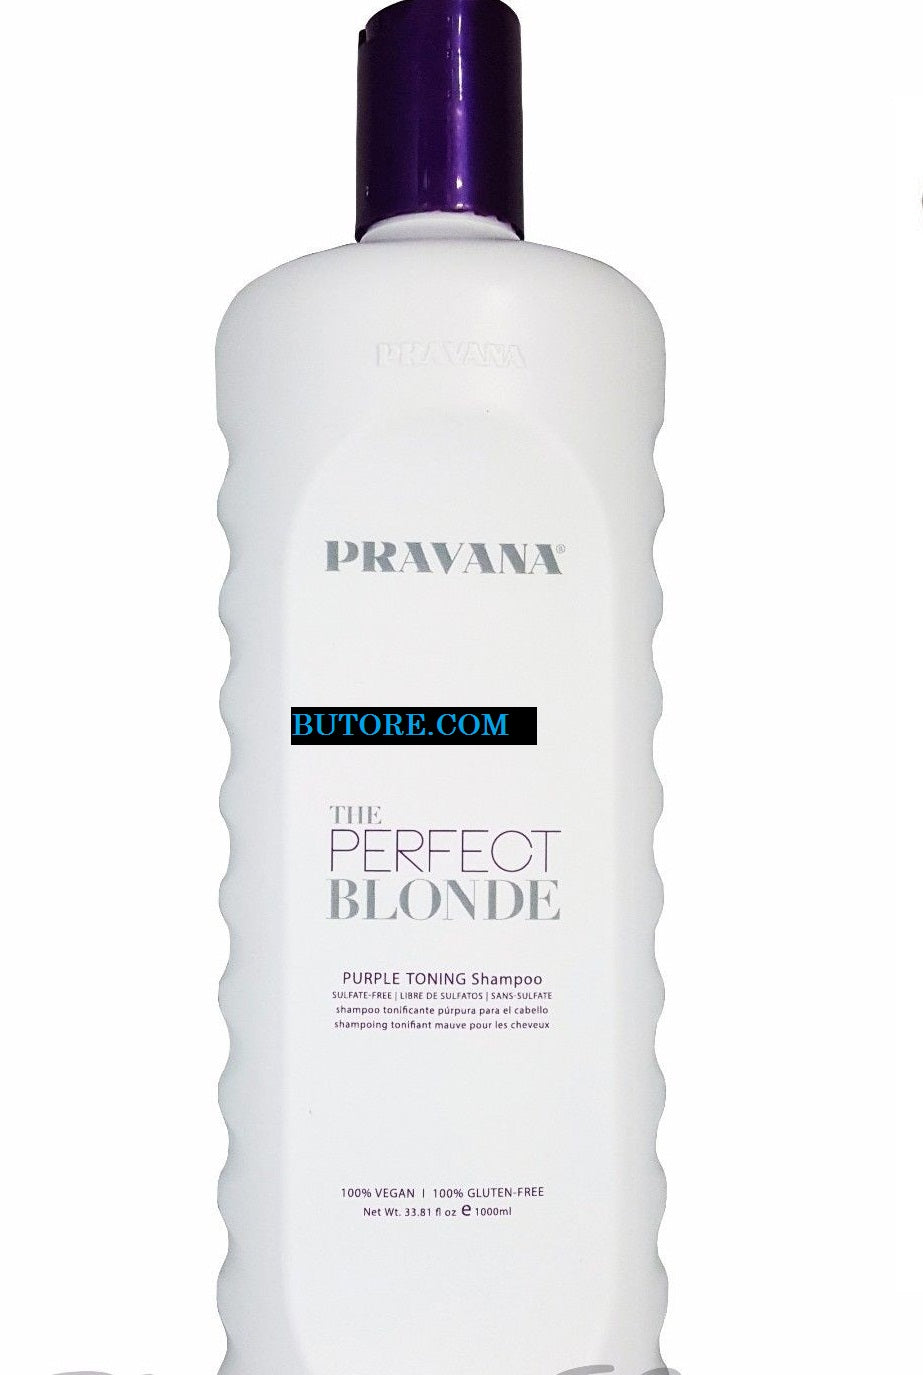 PRAVANA The Perfect Blonde Purple Toning Shampoo 33.8 oz